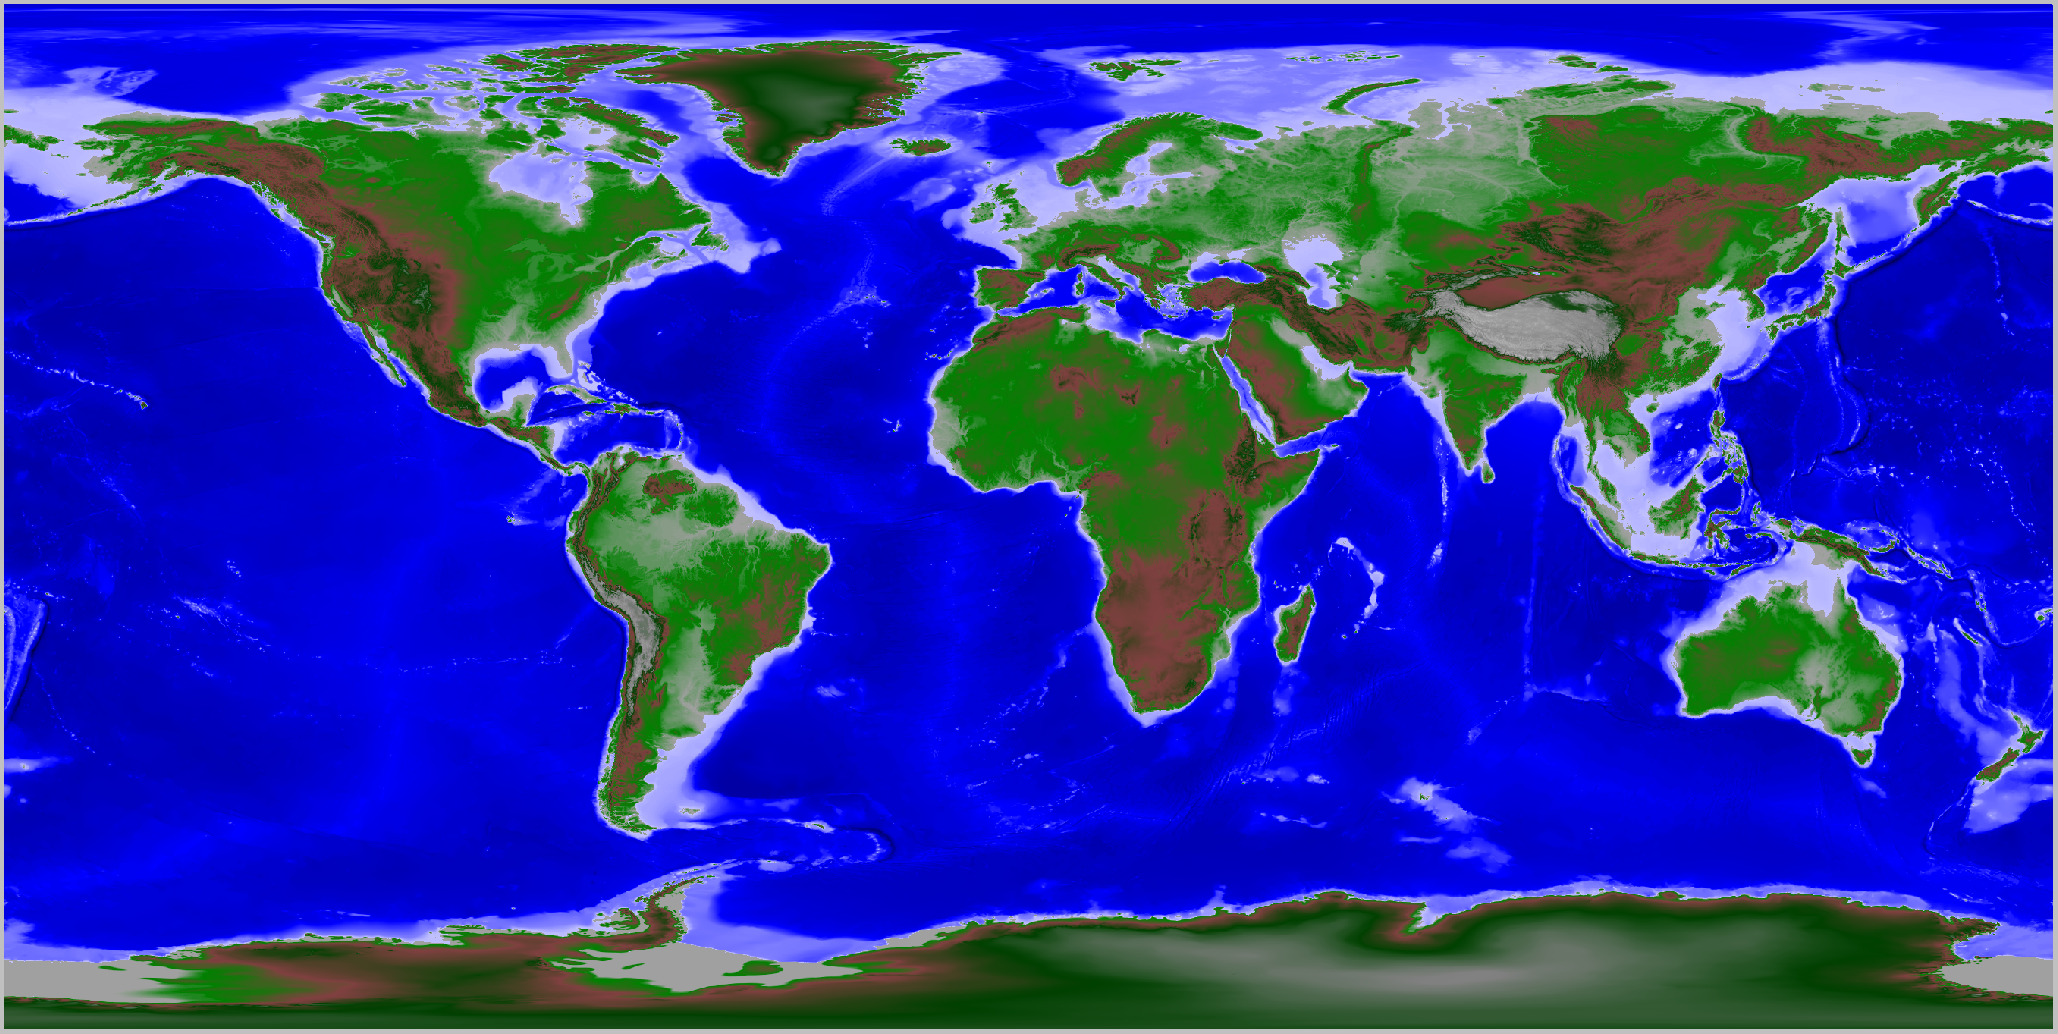 Fixed data - color transform rendering of the globe